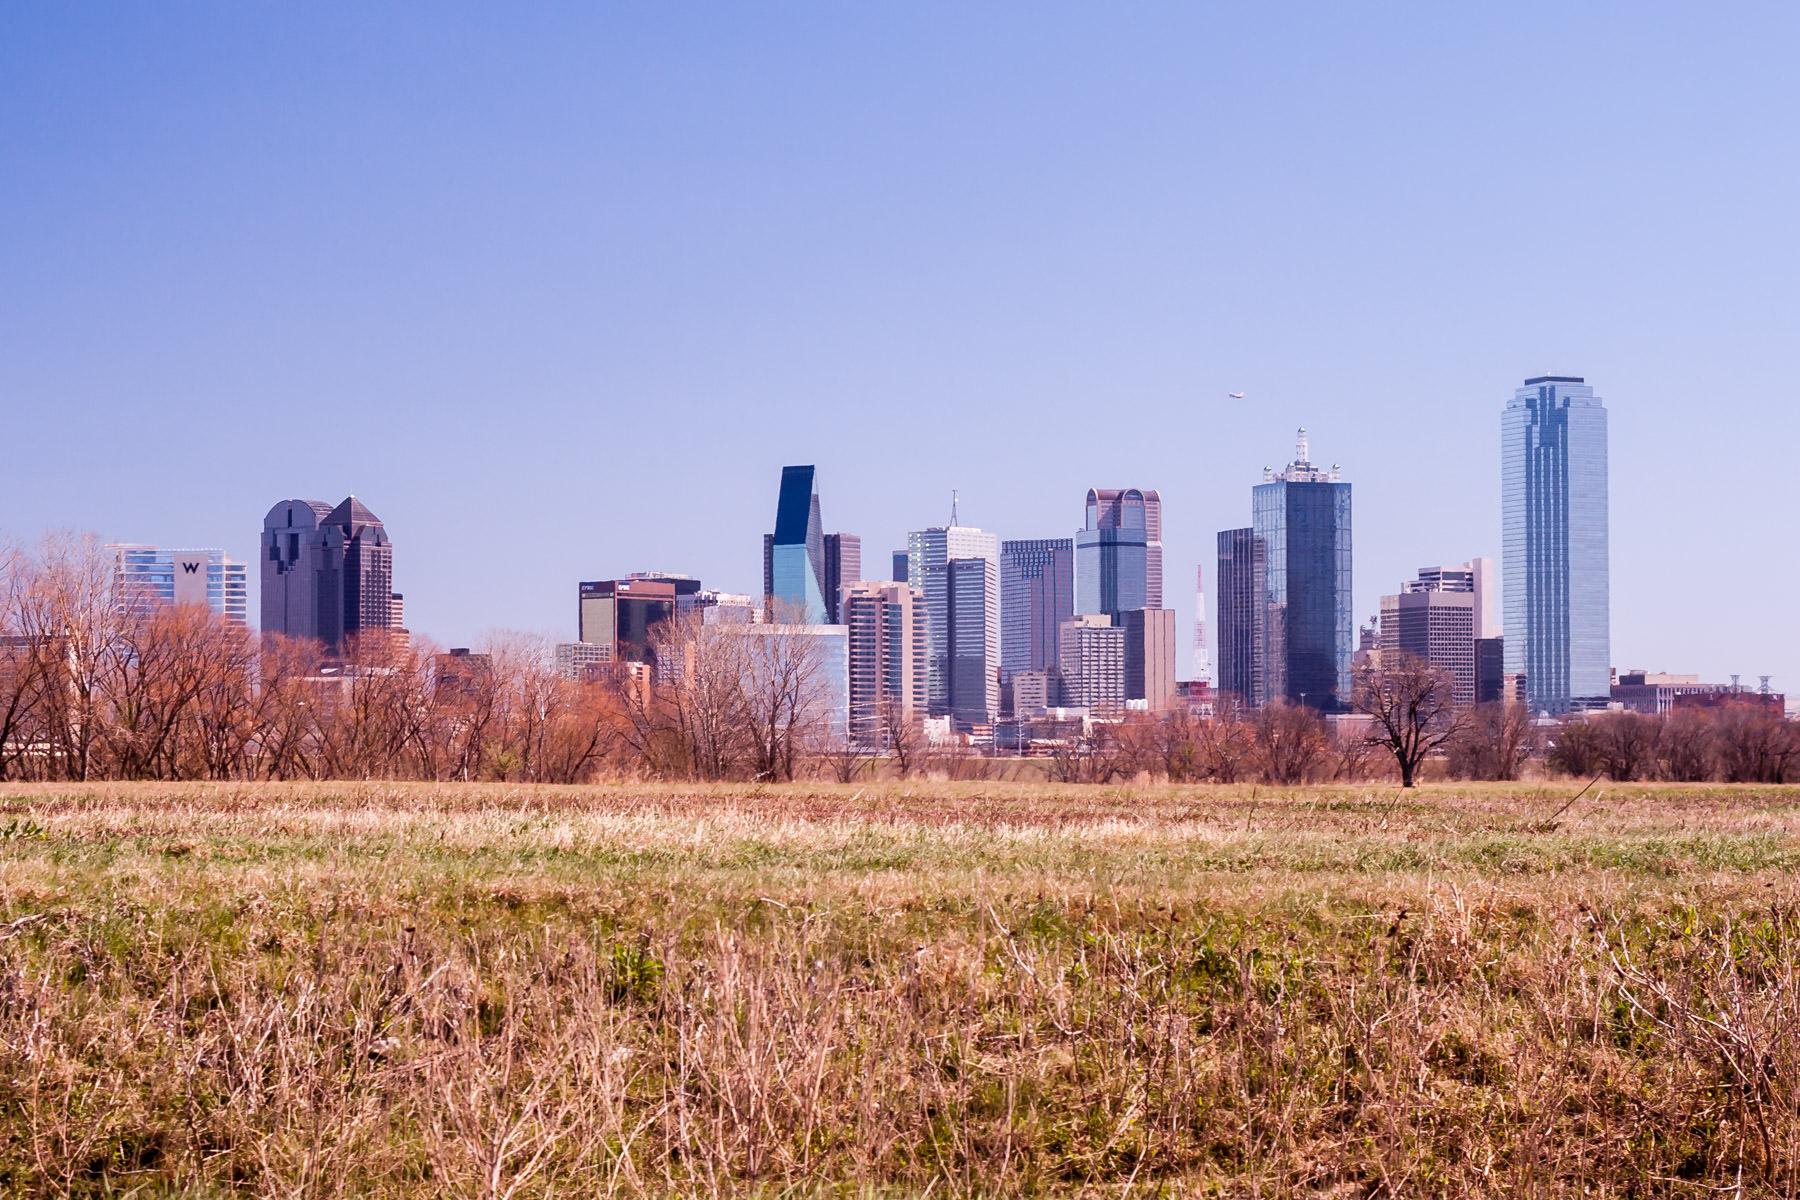 Downtown Dallas rises from the North Texas prairie.